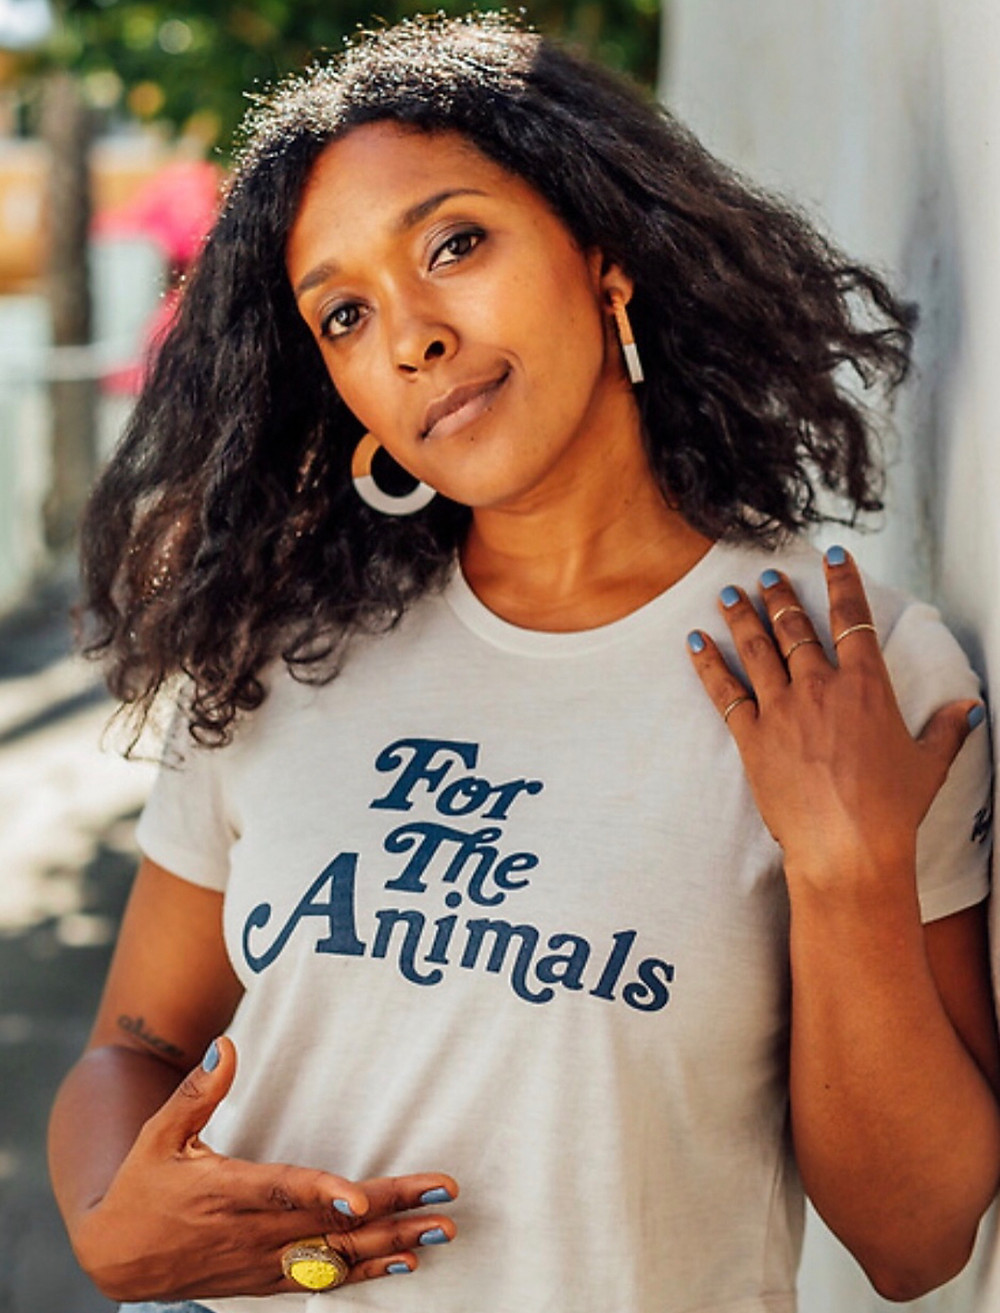 Portrait photo of Yvette, who is looking into the camera with her head slightly tilted to the side. She is wearing a t-shirt that reads 'For the Animals'